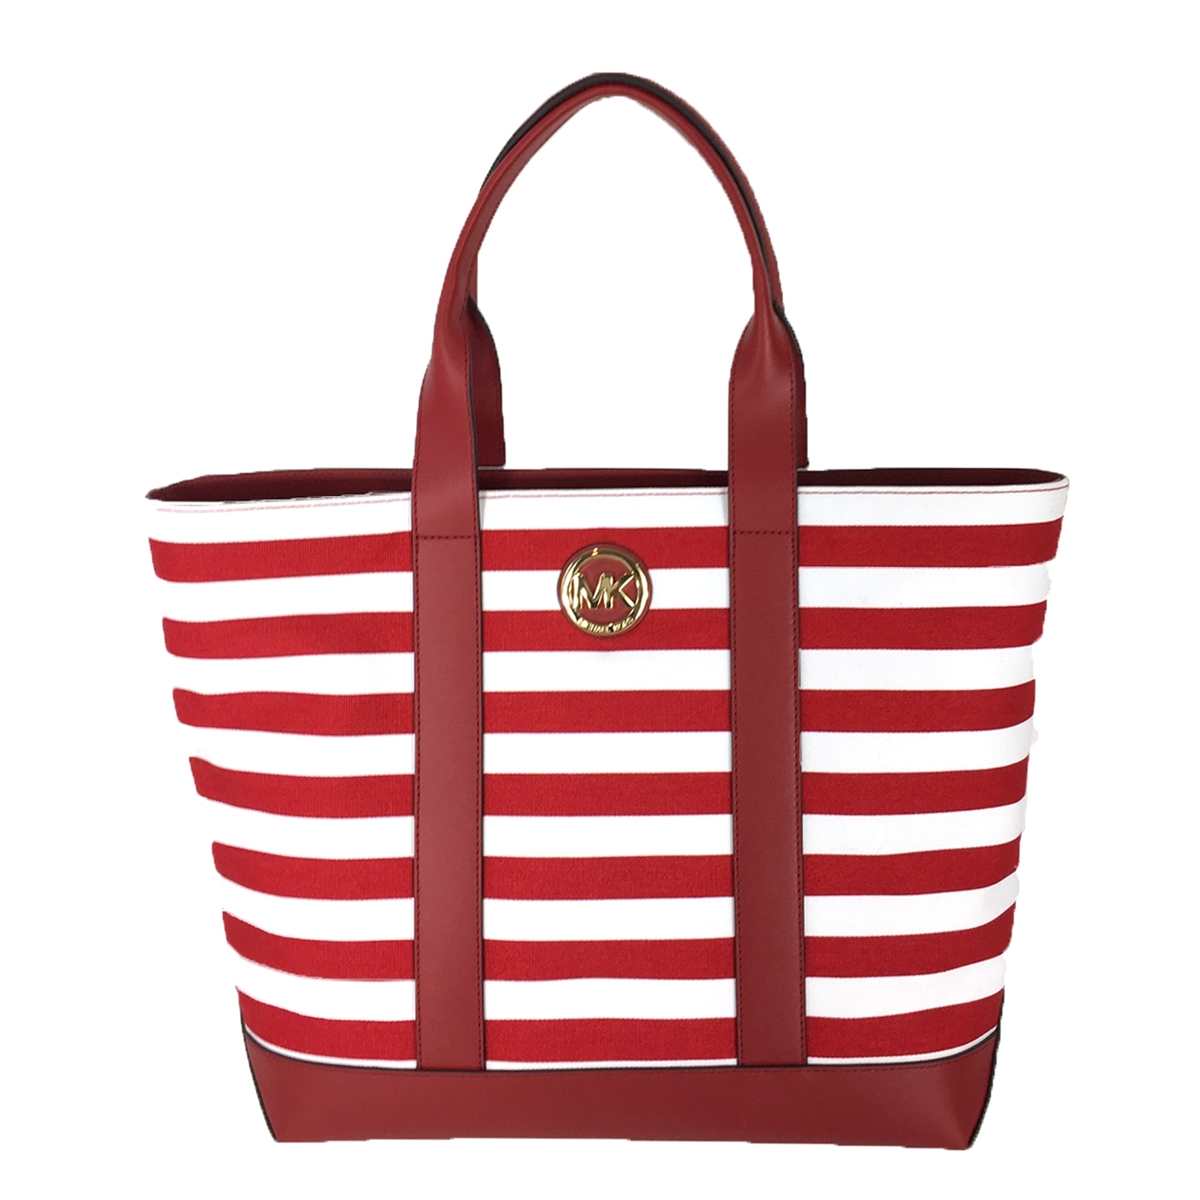 Michael Kors Fulton Striped Canvas Large Tote, Red White f67ab11eaa